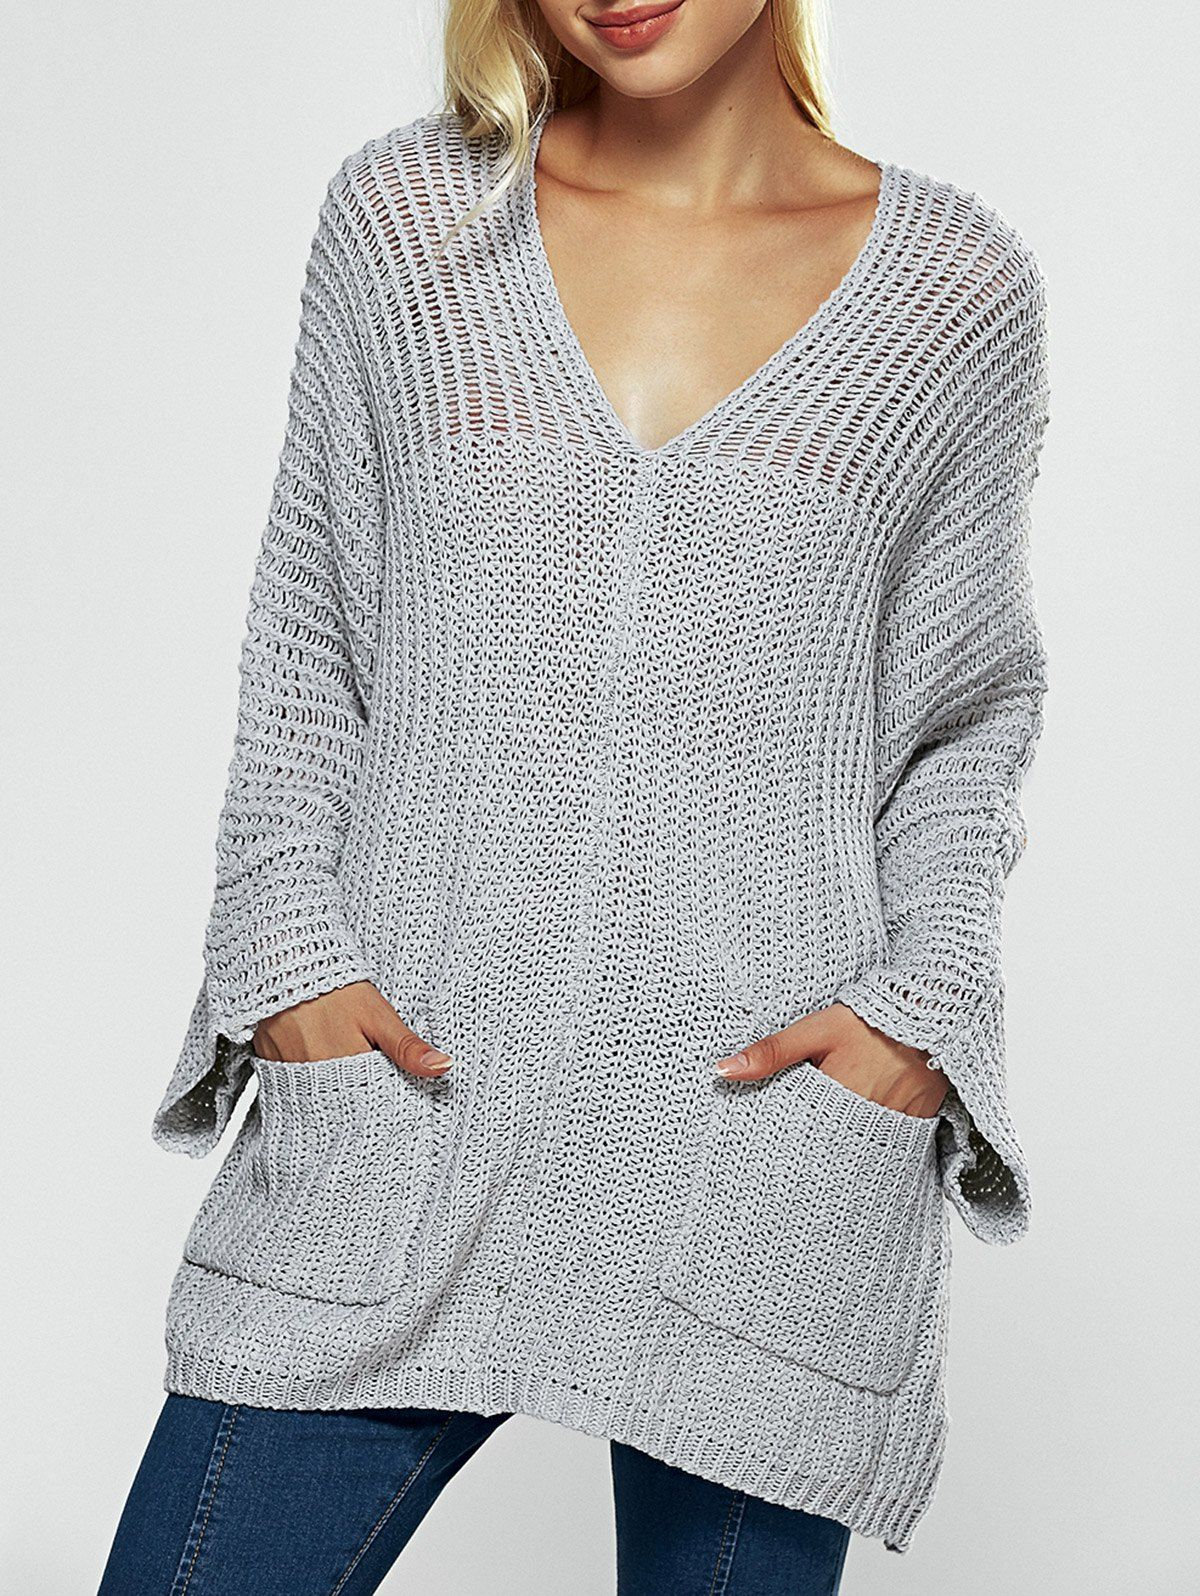 65a9ca47c Sweaters   Cardigans - Womens Knit